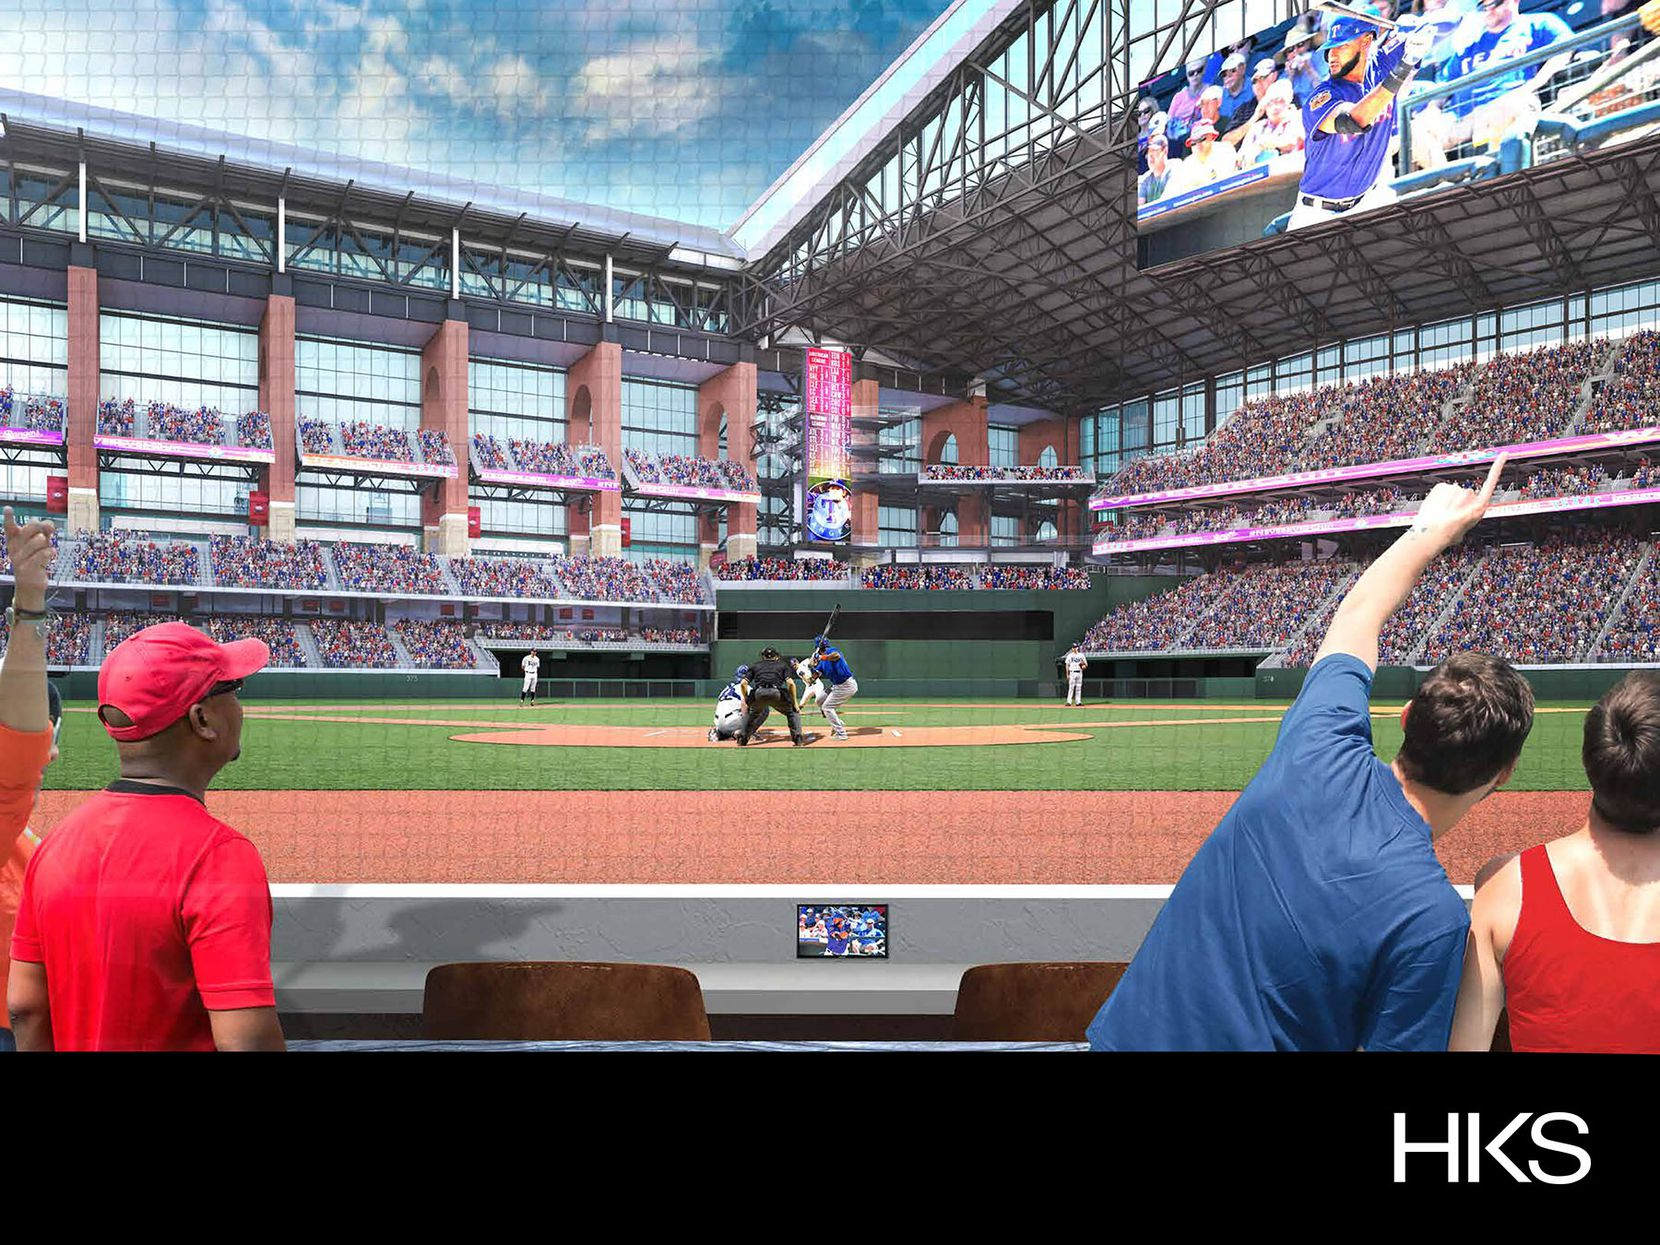 Rendering via The Texas Rangers.